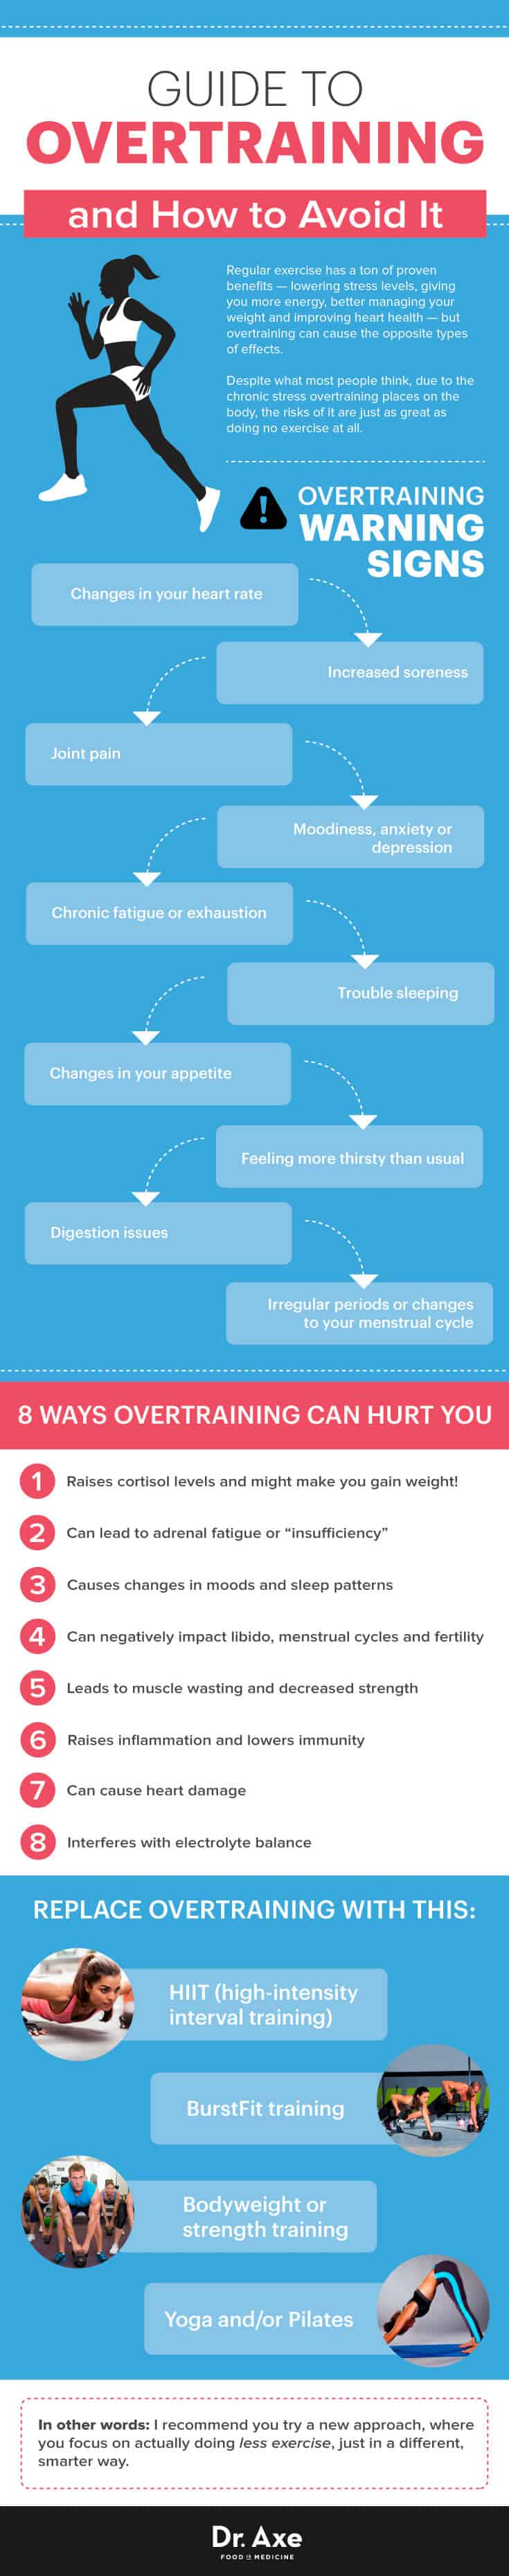 Overtraining infographic - Dr. Axe